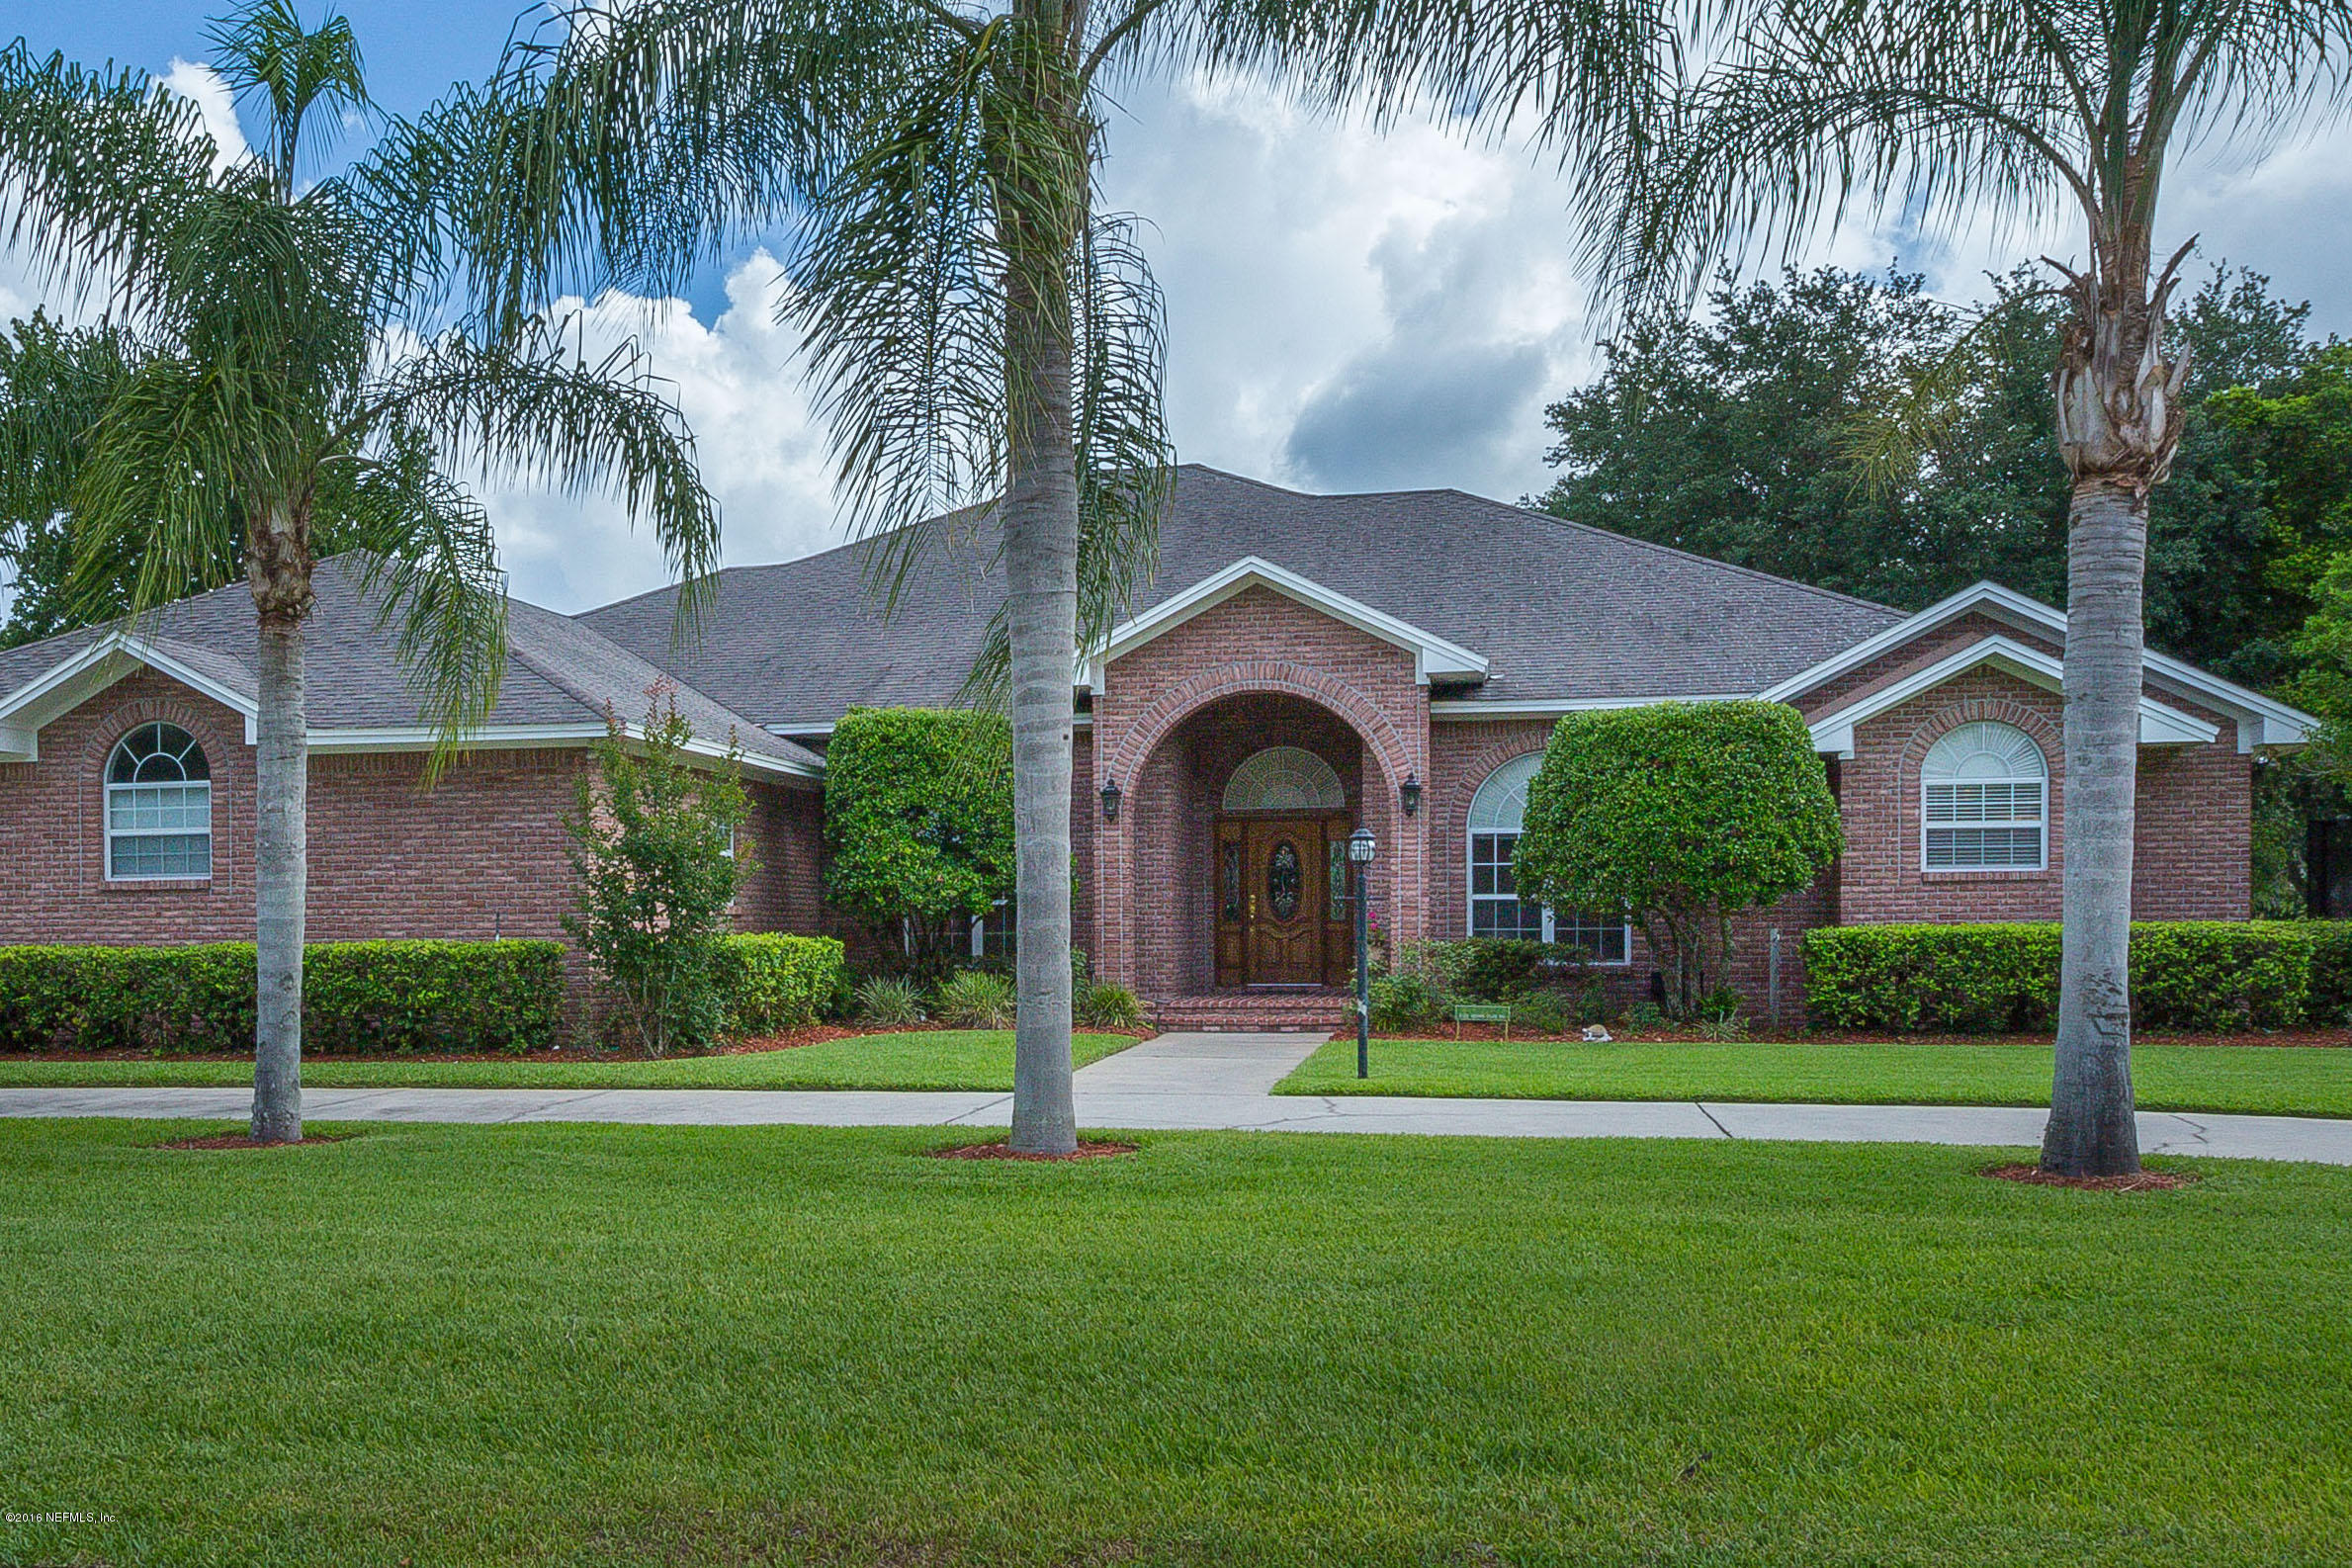 8307 RIDING CLUB, JACKSONVILLE, FLORIDA 32256, 4 Bedrooms Bedrooms, ,4 BathroomsBathrooms,Residential - single family,For sale,RIDING CLUB,964997